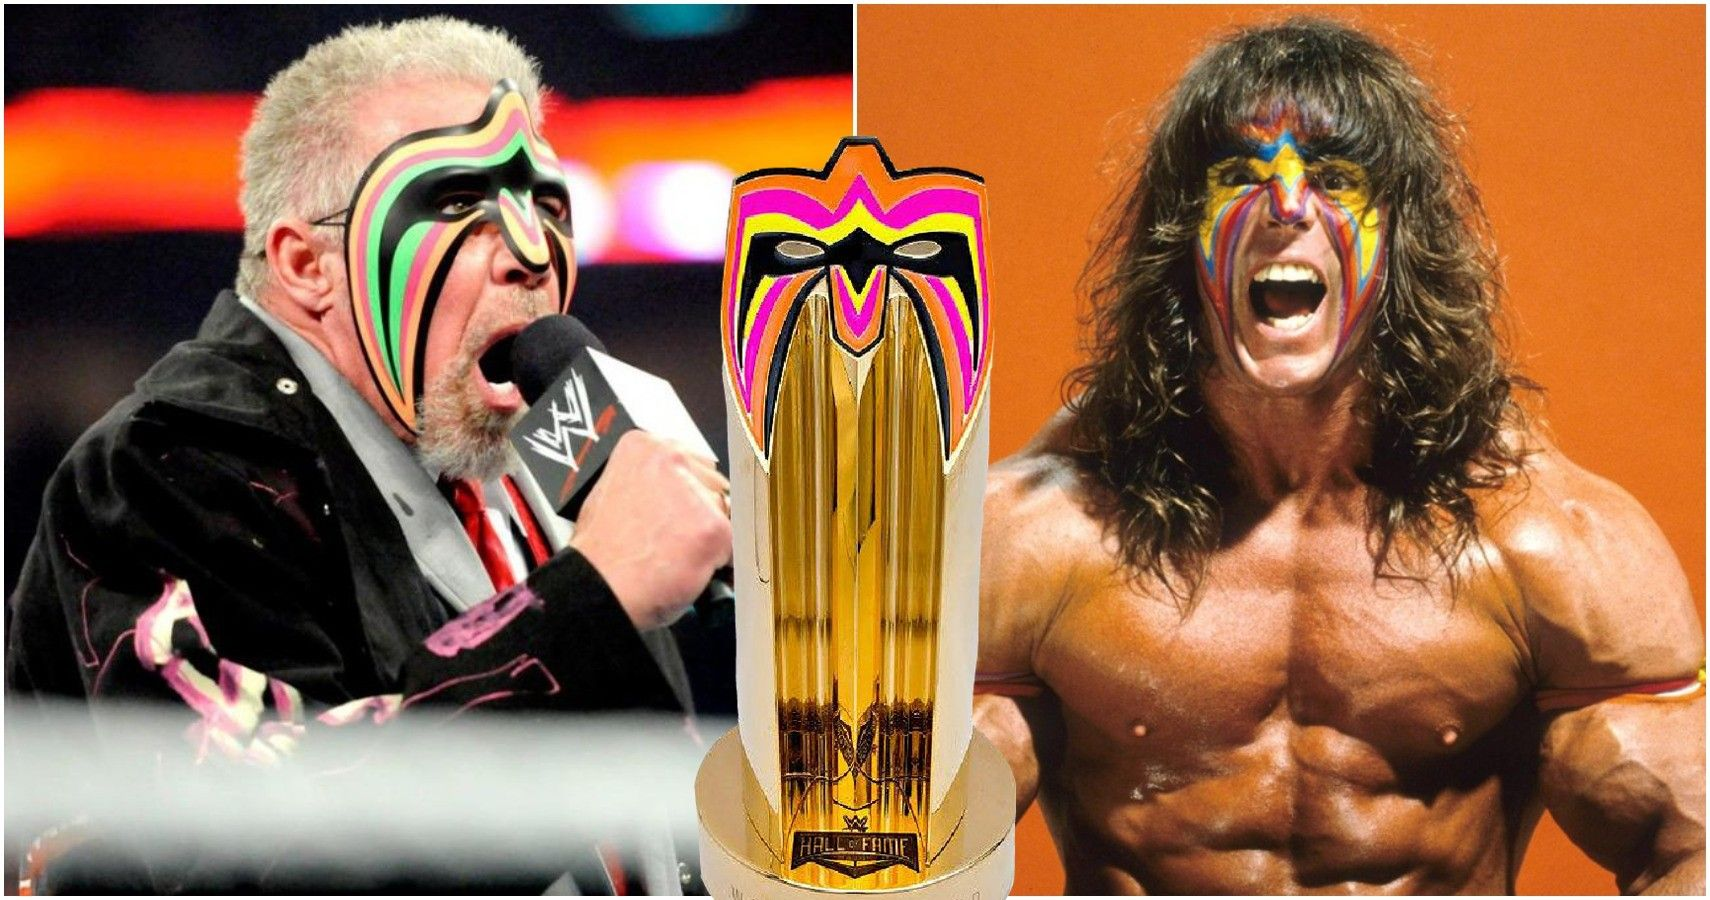 Ultimate Whitewashing: Fans Should Not Accept WWE's Ultimate Warrior Narrative